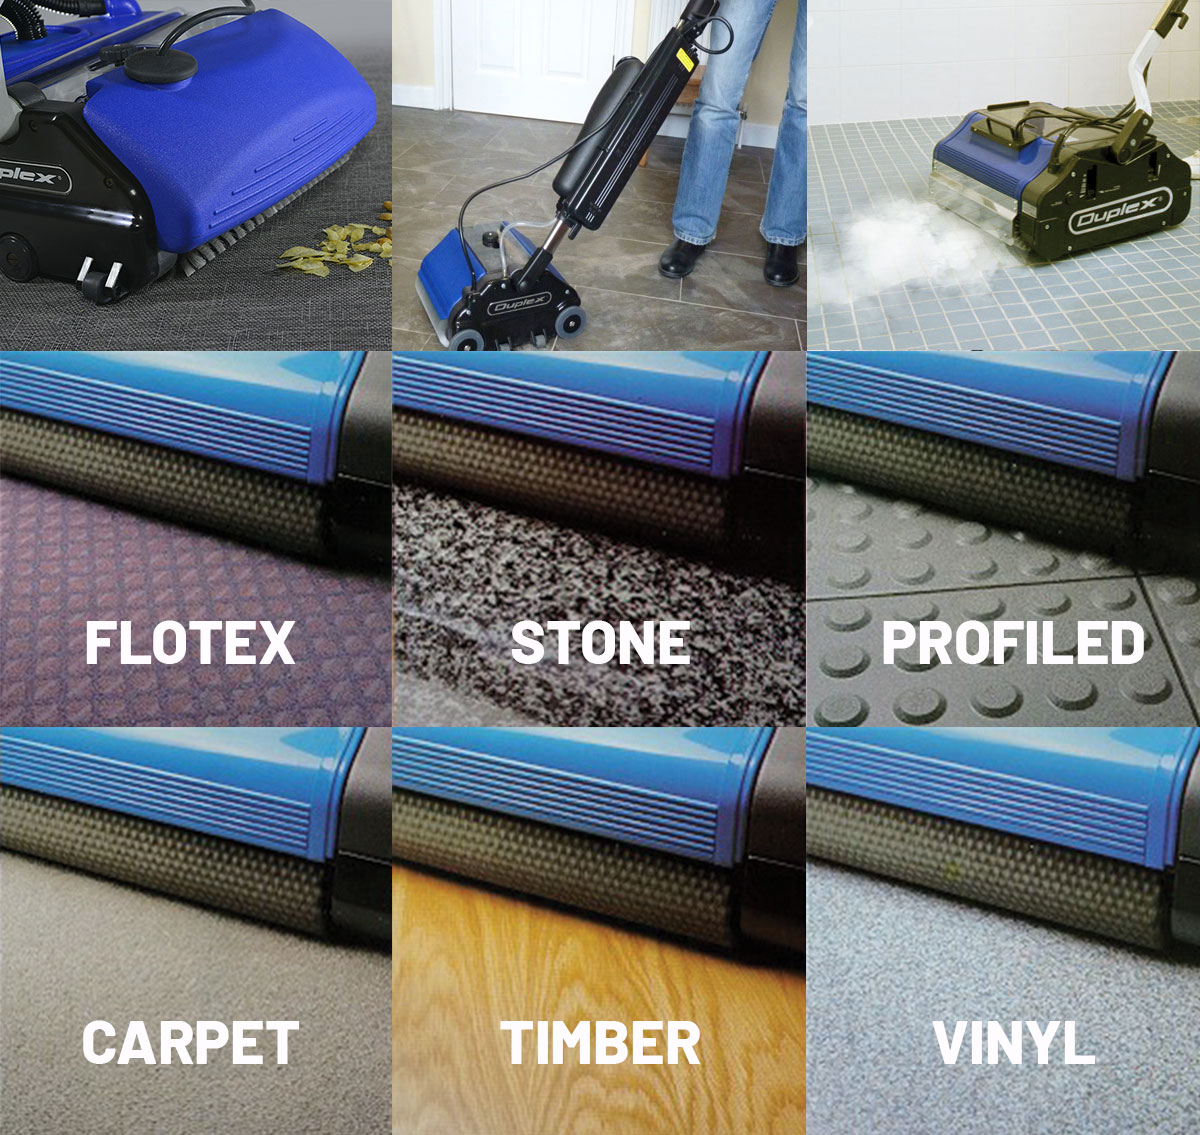 Duplex floor cleaning product applications